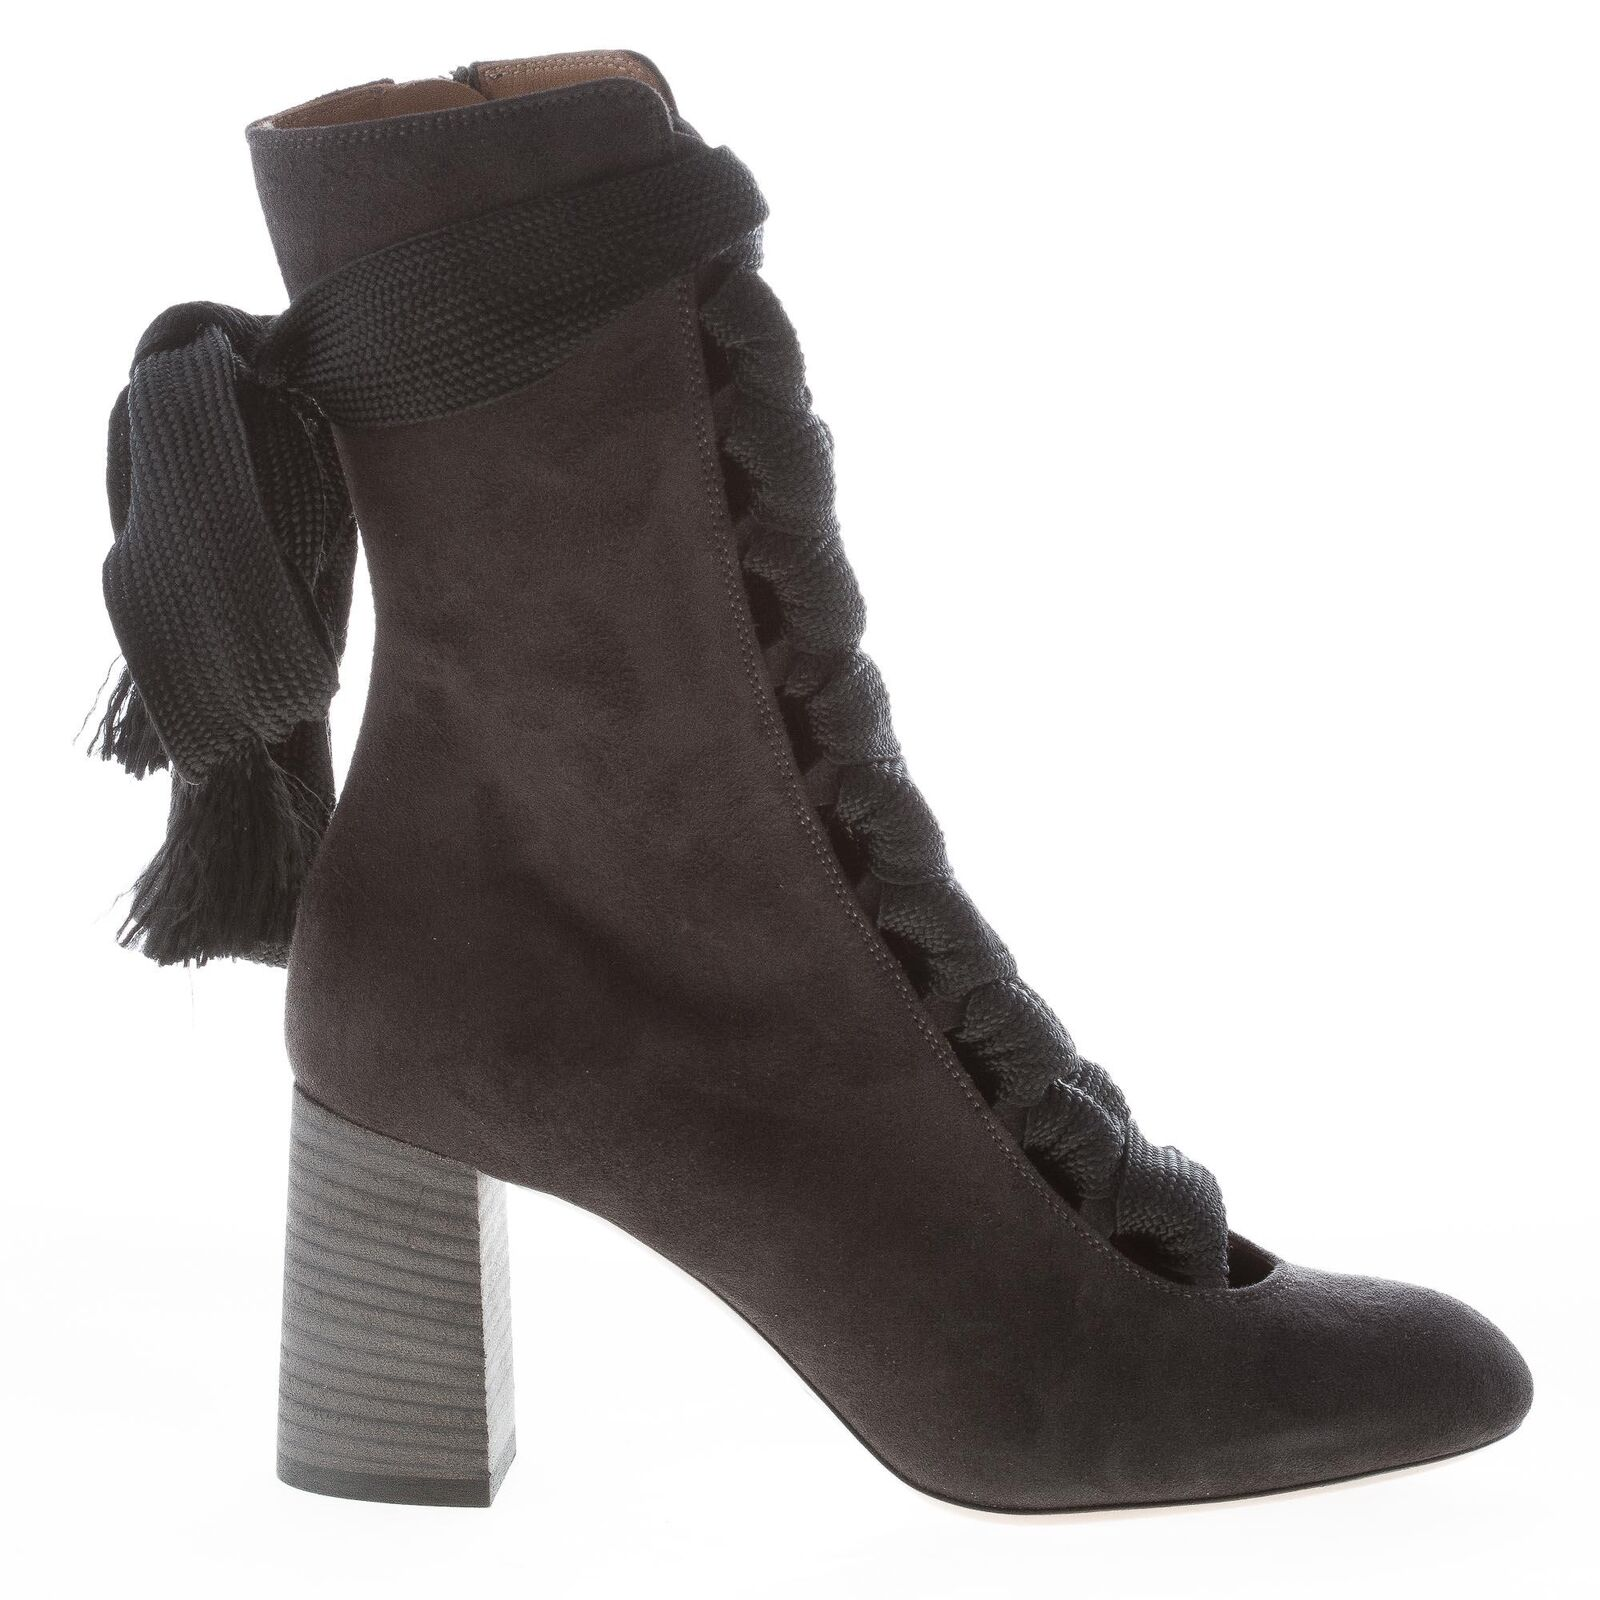 CHLOE' women shoes Harper black suede round toe laced ankle boot CH25533E01